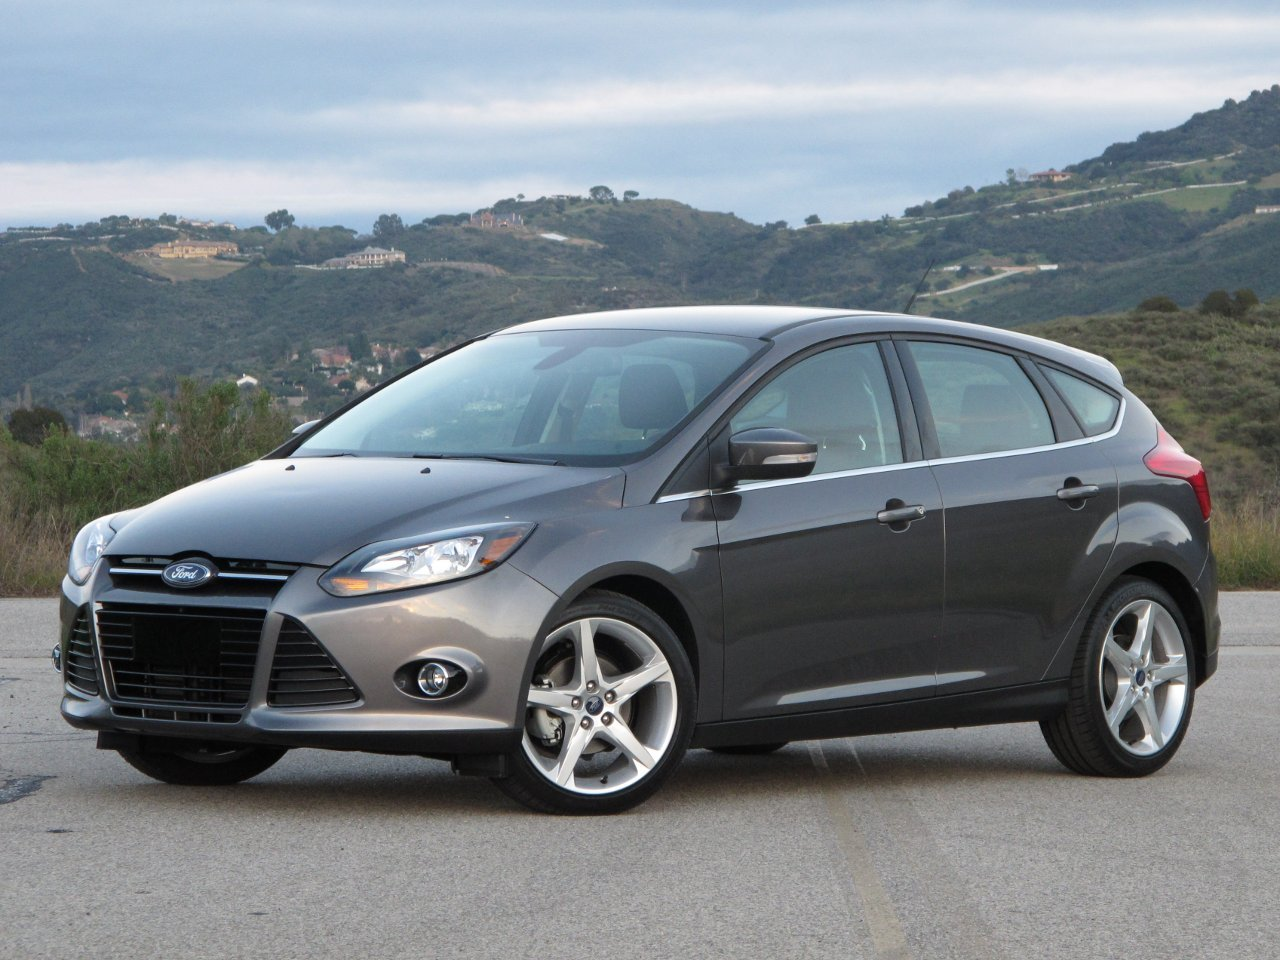 Pictures of ford focus hatchback ii 2009 #9